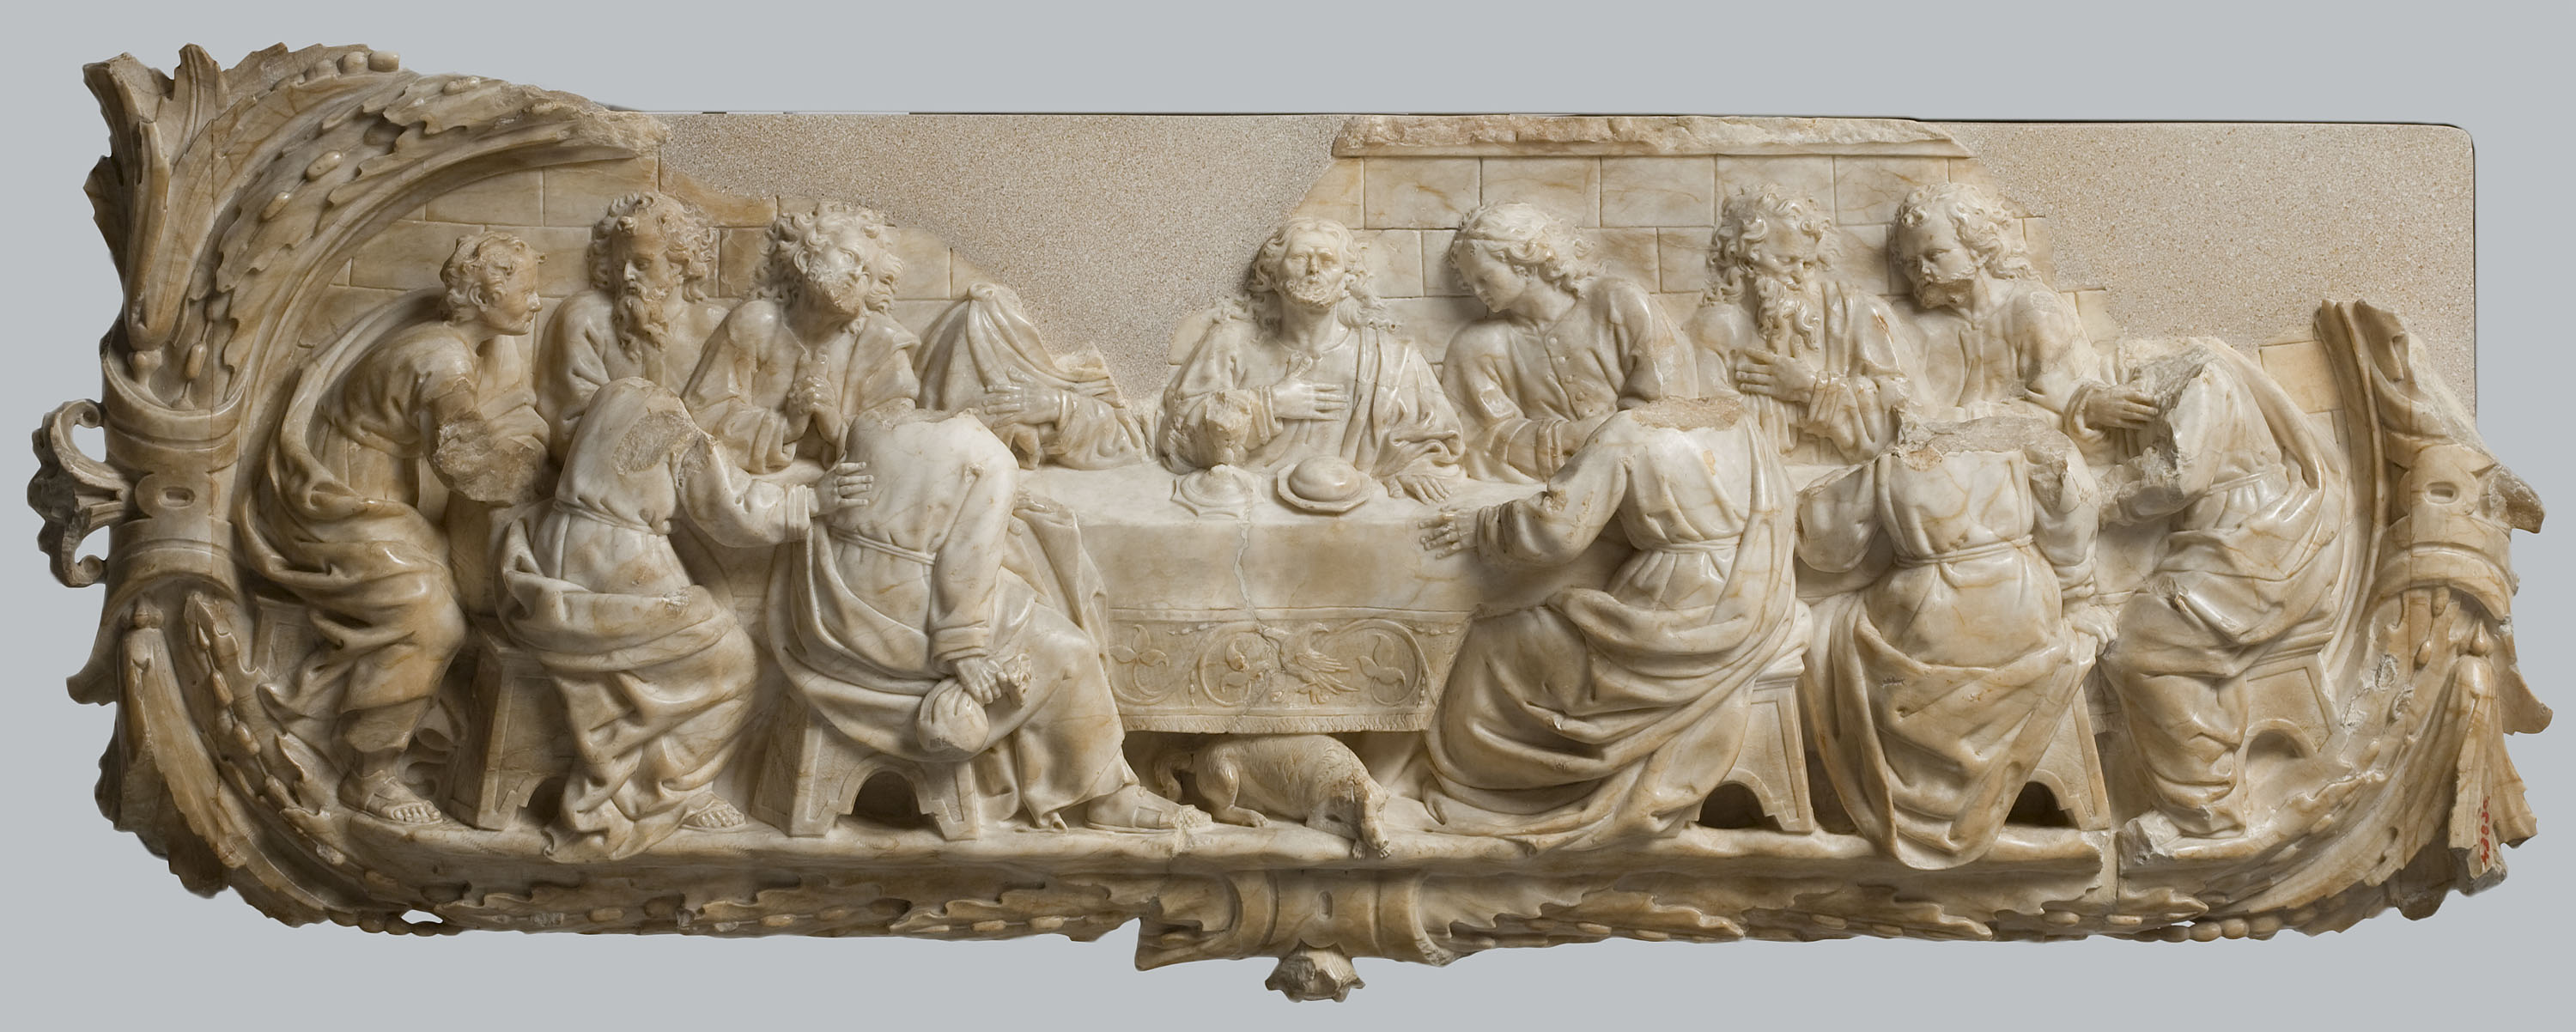 Isidre Espinalt, The Last Supper, 1695